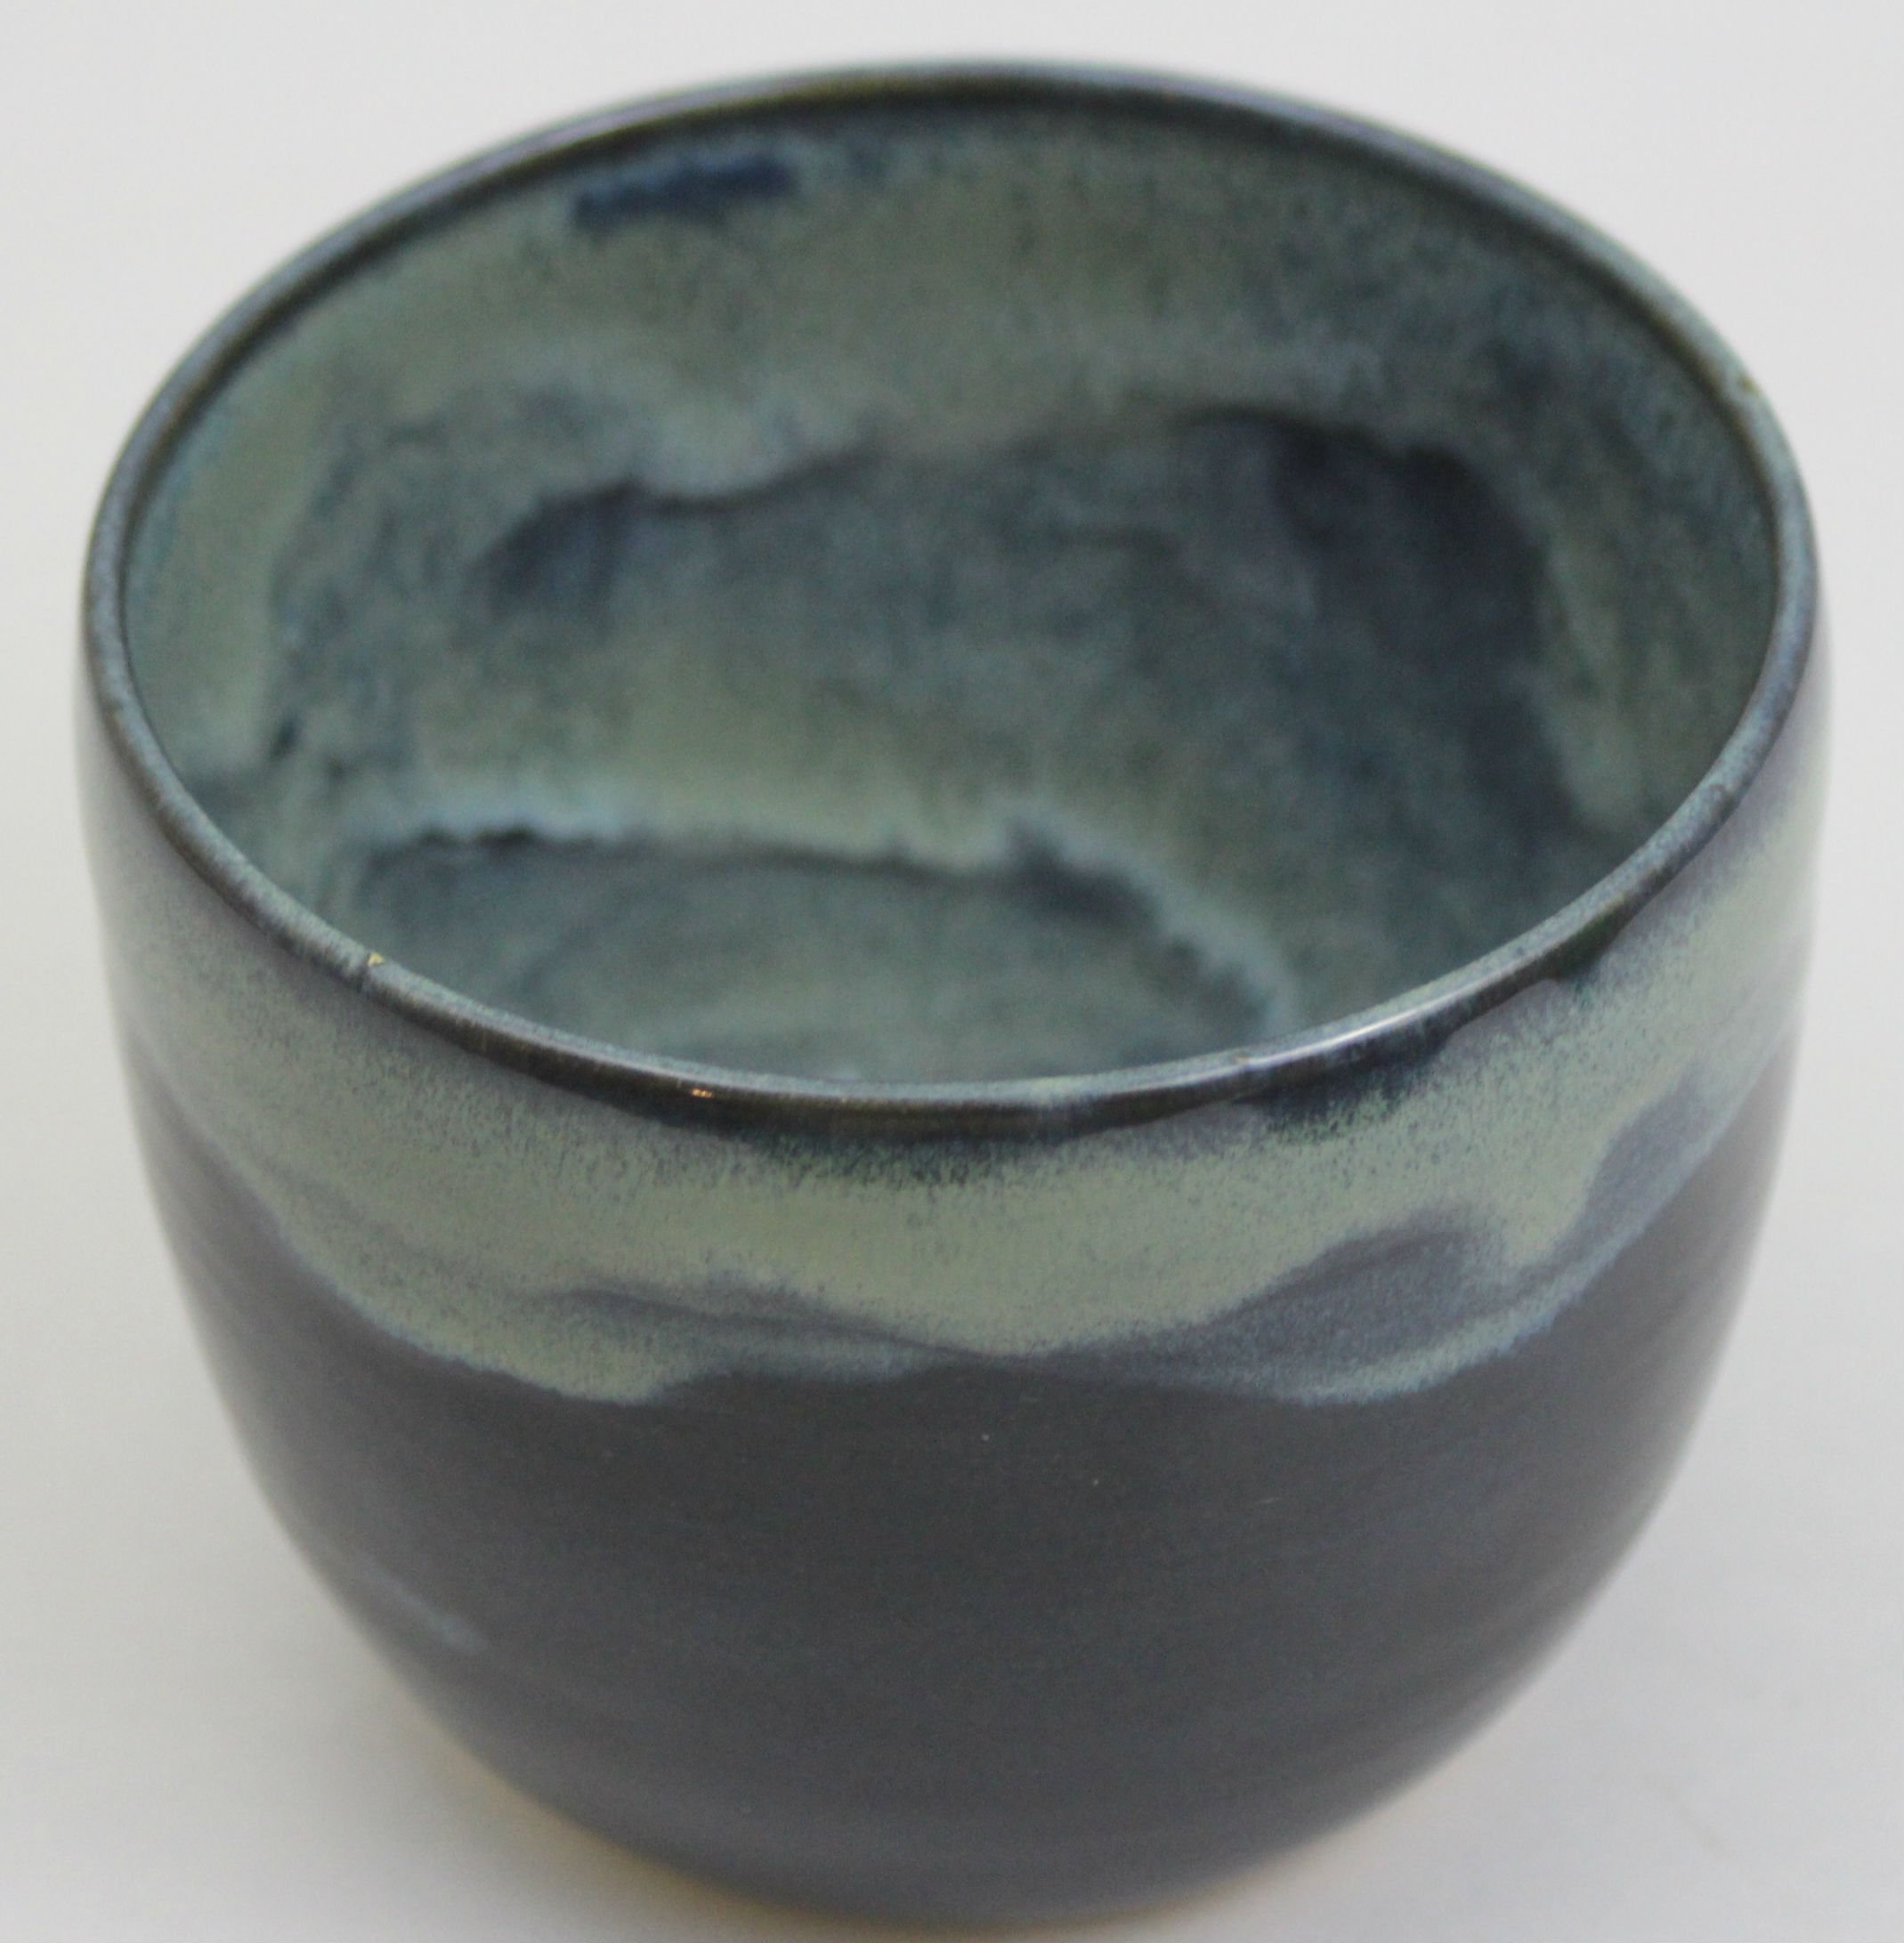 Chawan Matcha Tea Bowl for Matcha Tea Ceremony Drinking Matcha Tea Handcrafted in Vermont (Partial Turq Mix)